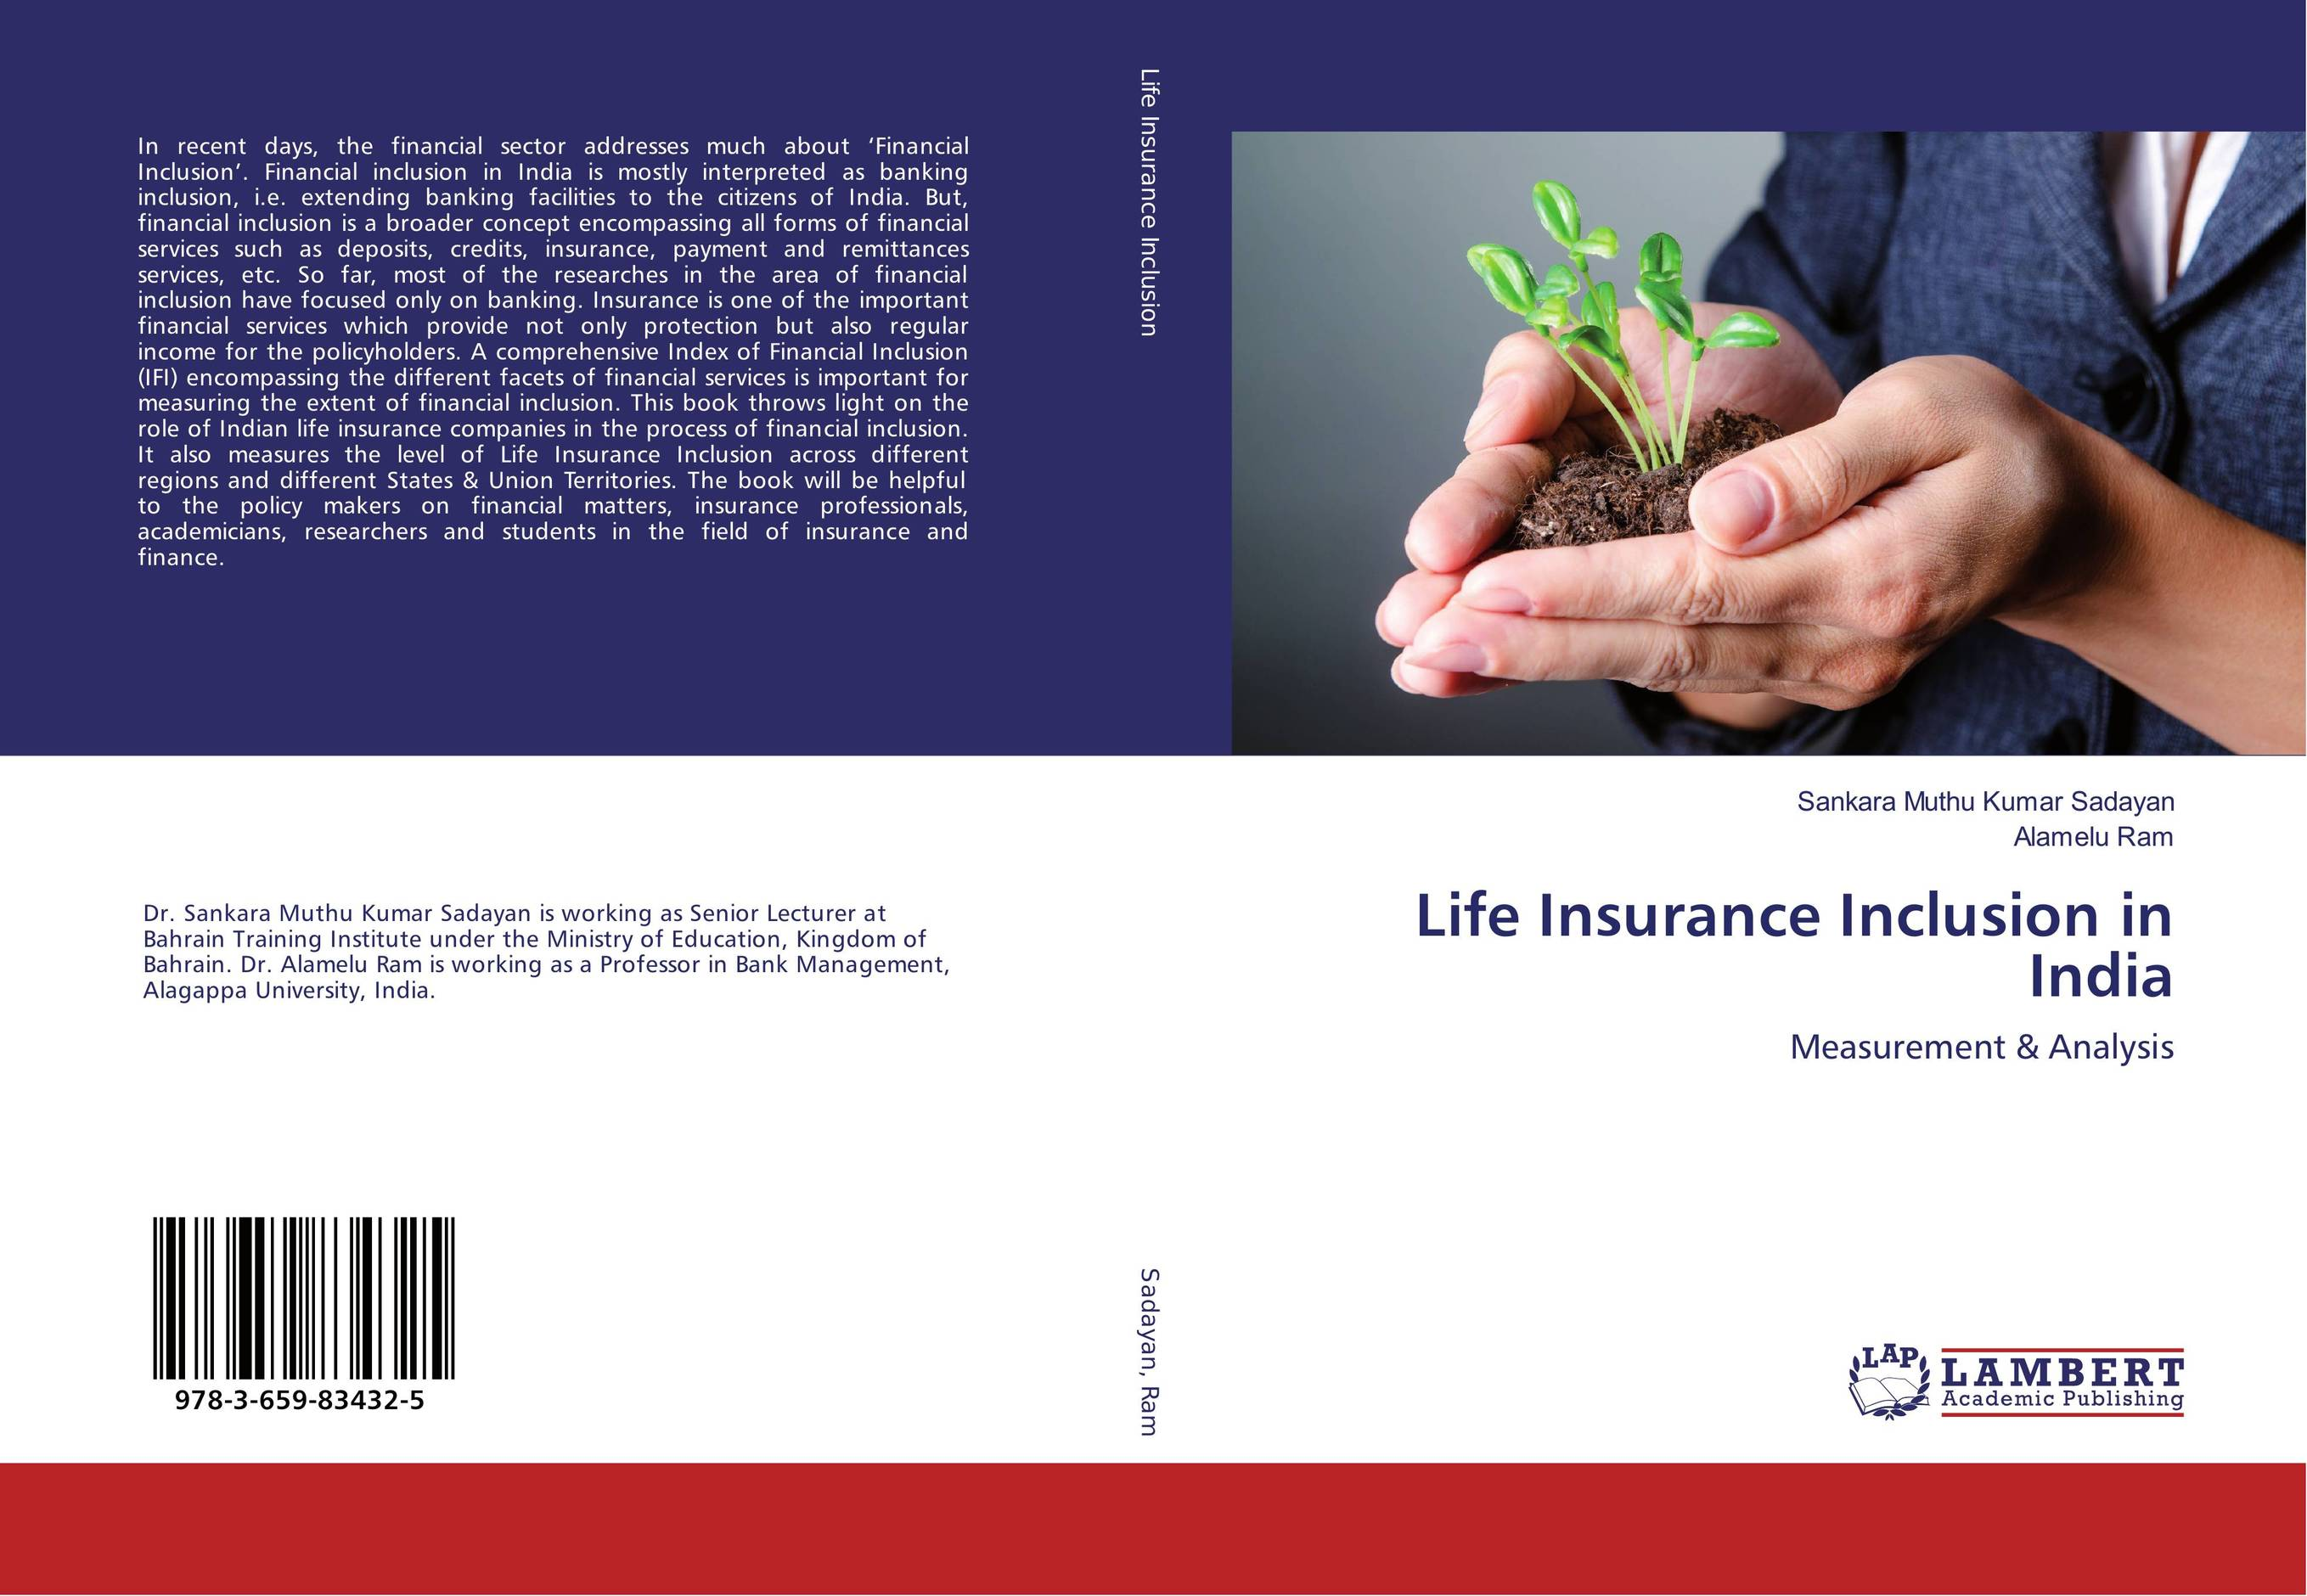 Life Insurance Inclusion in India